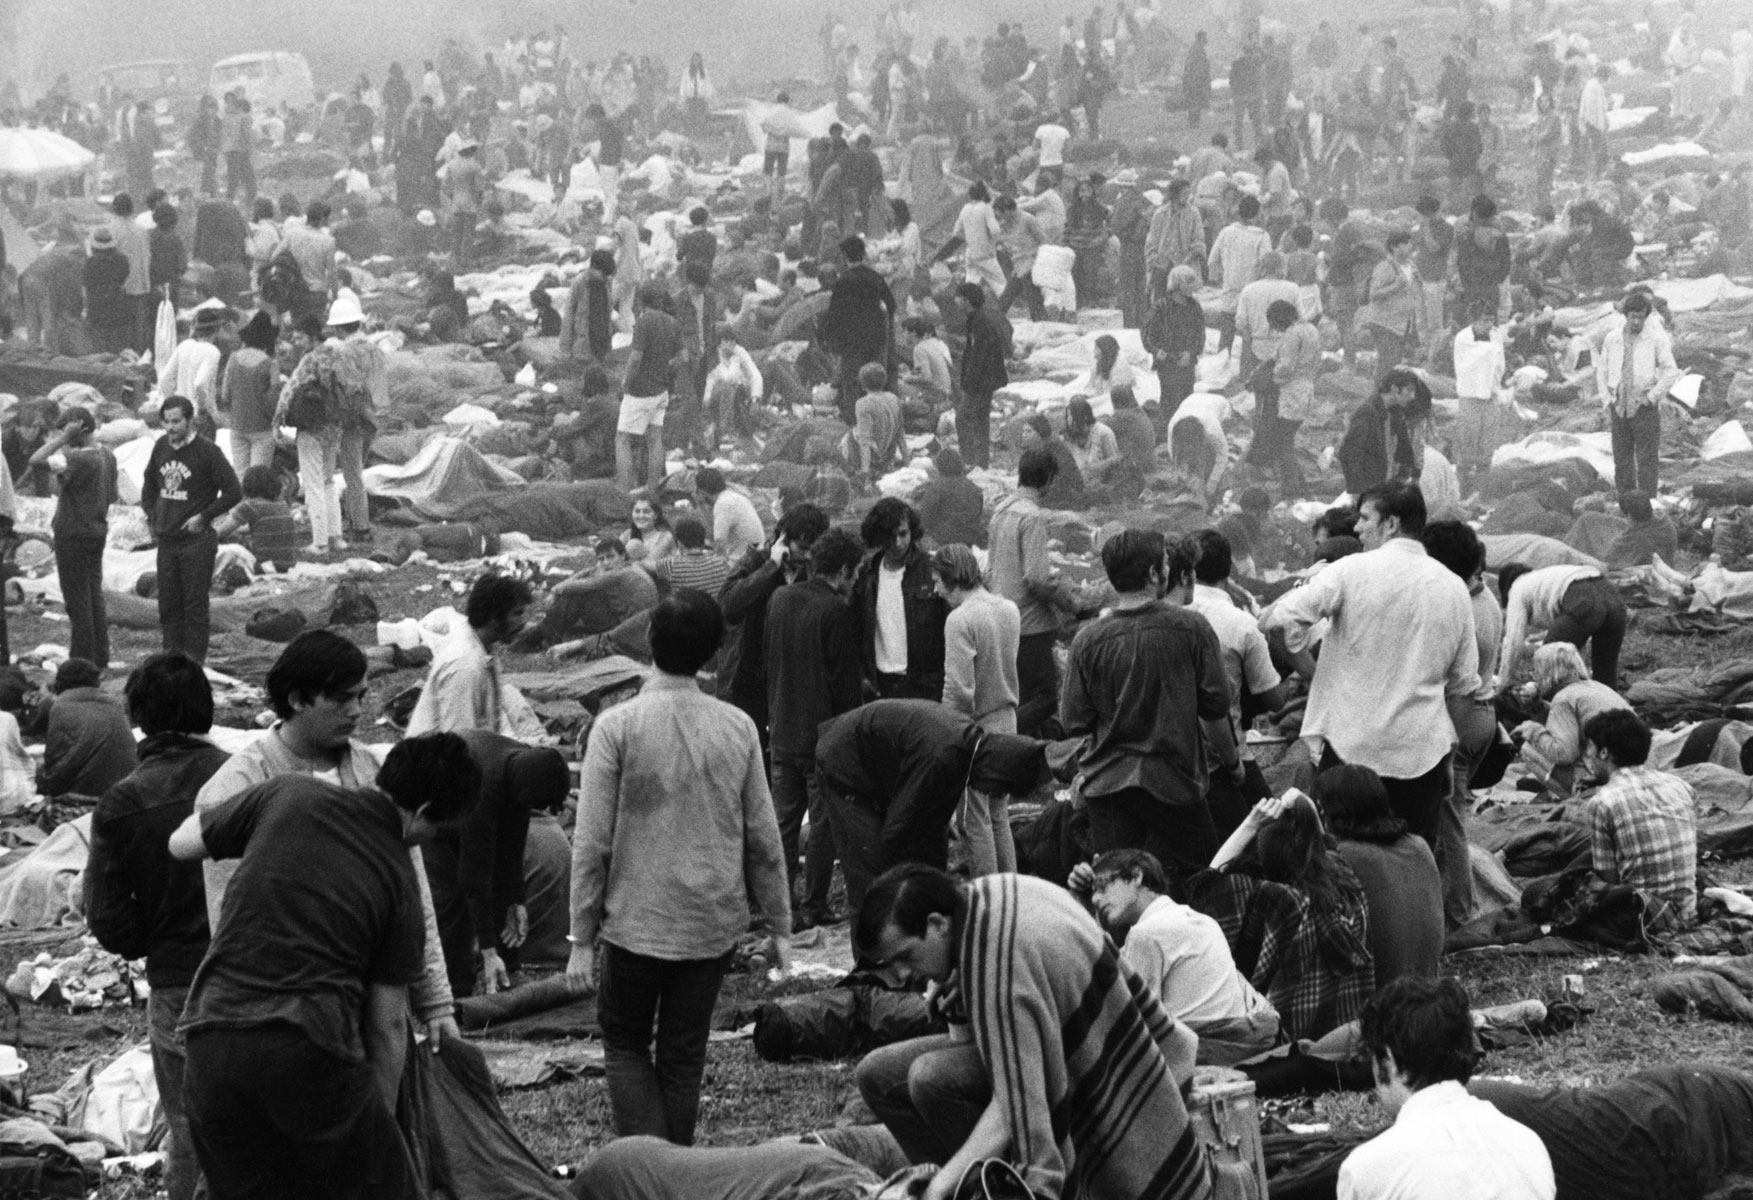 The Woodstock Music and Art Festival, a famous rock festival held at a dairy farm in Bethel, New York on August 15-17, 1969. Фото: East News